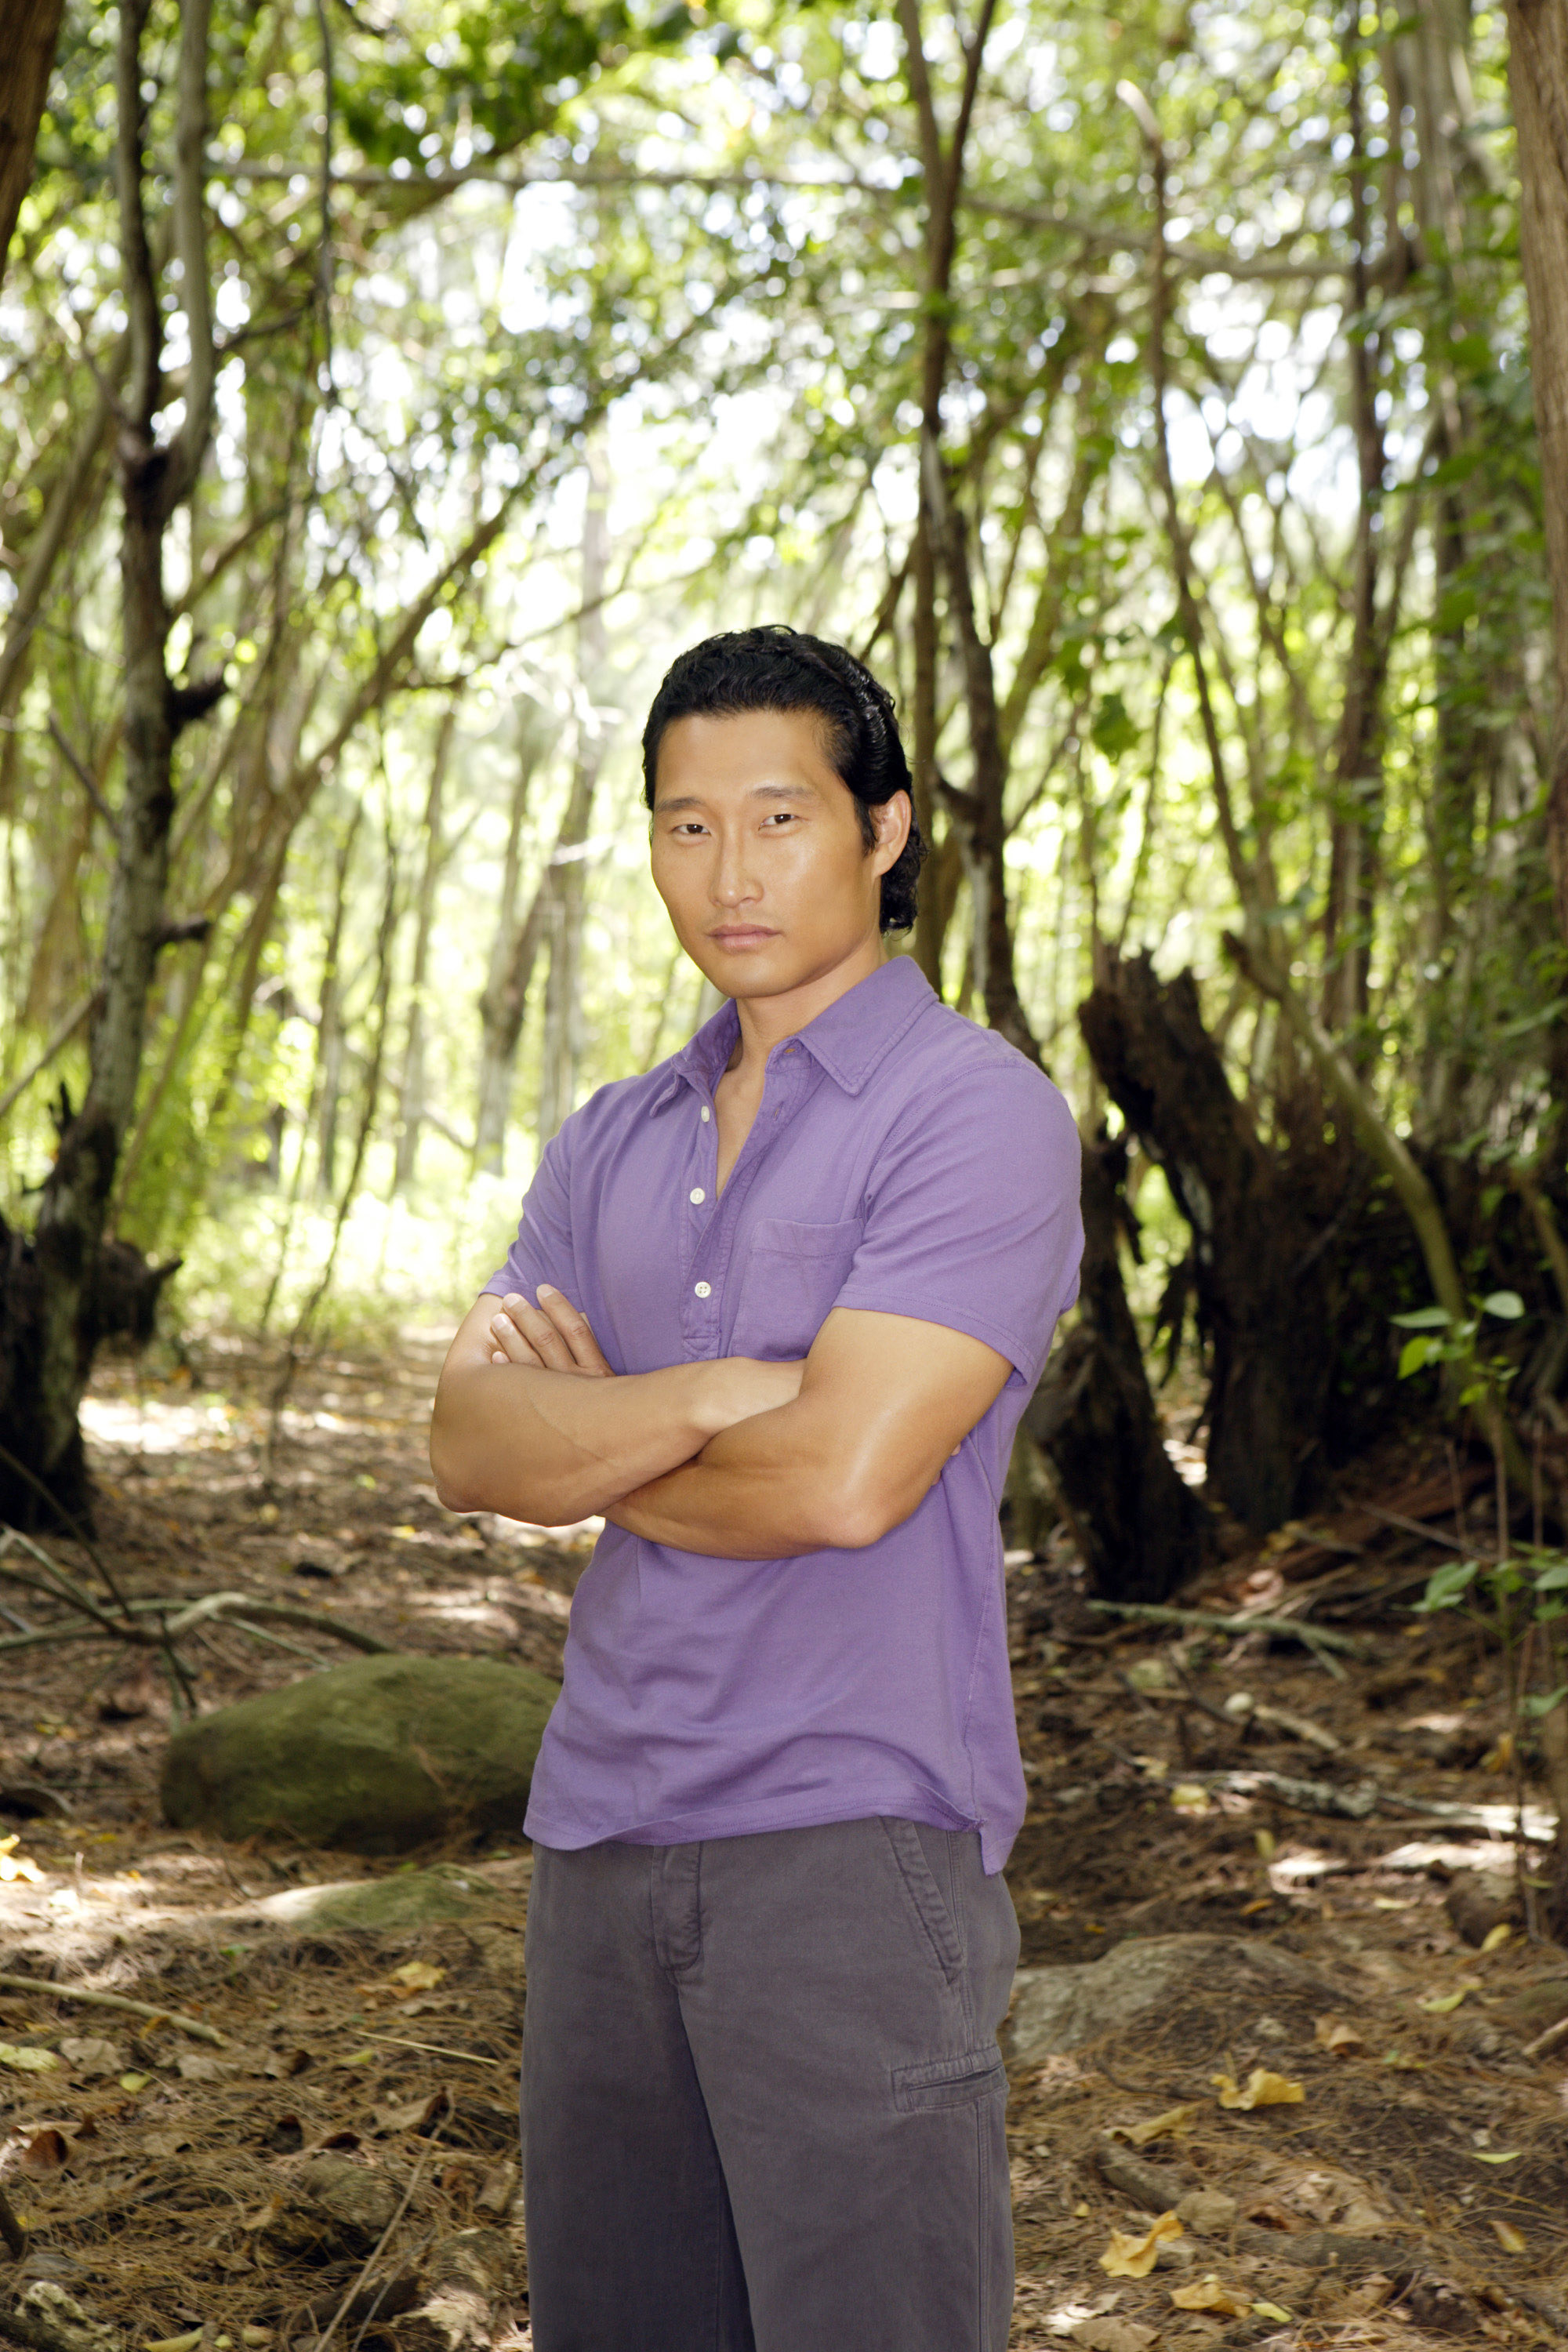 A promo image of Kim from the TV show Lost